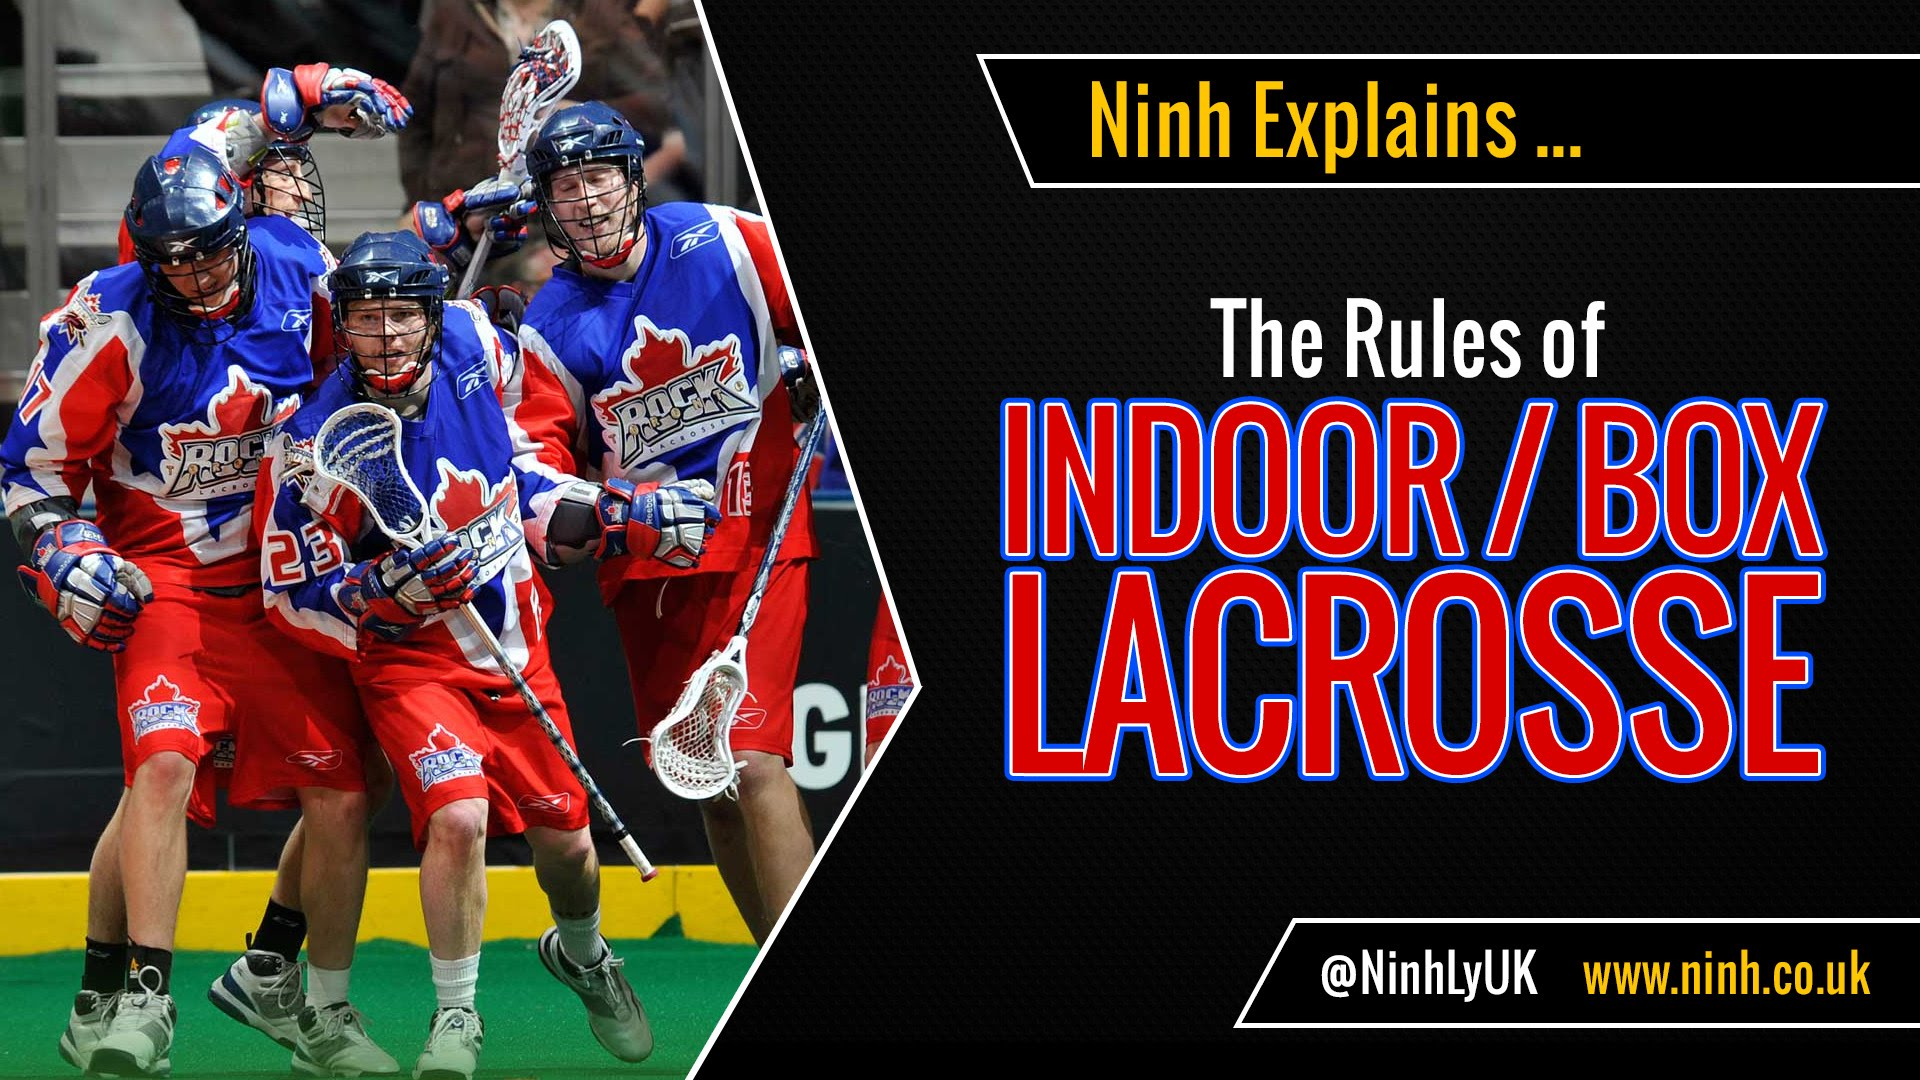 Box Lacrosse - Rules